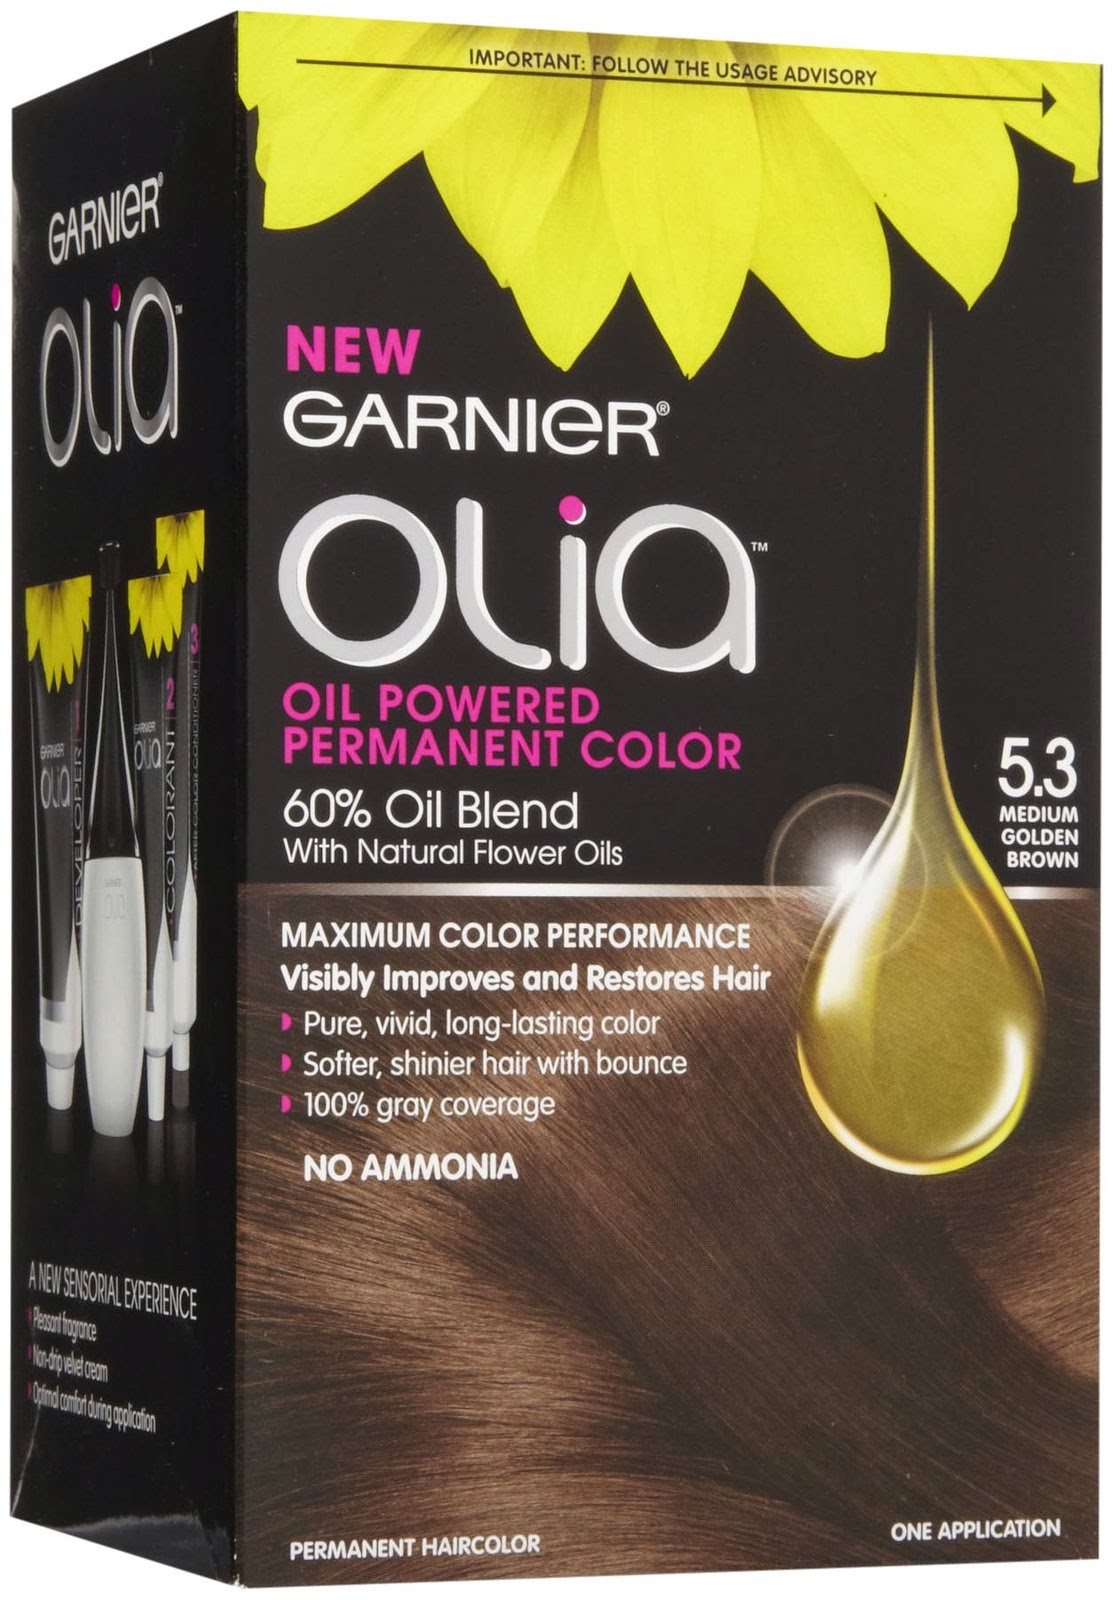 Garnier olia permanent hair colour golden brown 5 3 - The Smell Is The Dye Is Great It Does Not Contain Any Ammonia And It S Made With An Oil Blend As The Box Says It Did Leave My Hair Feeling Smooth And